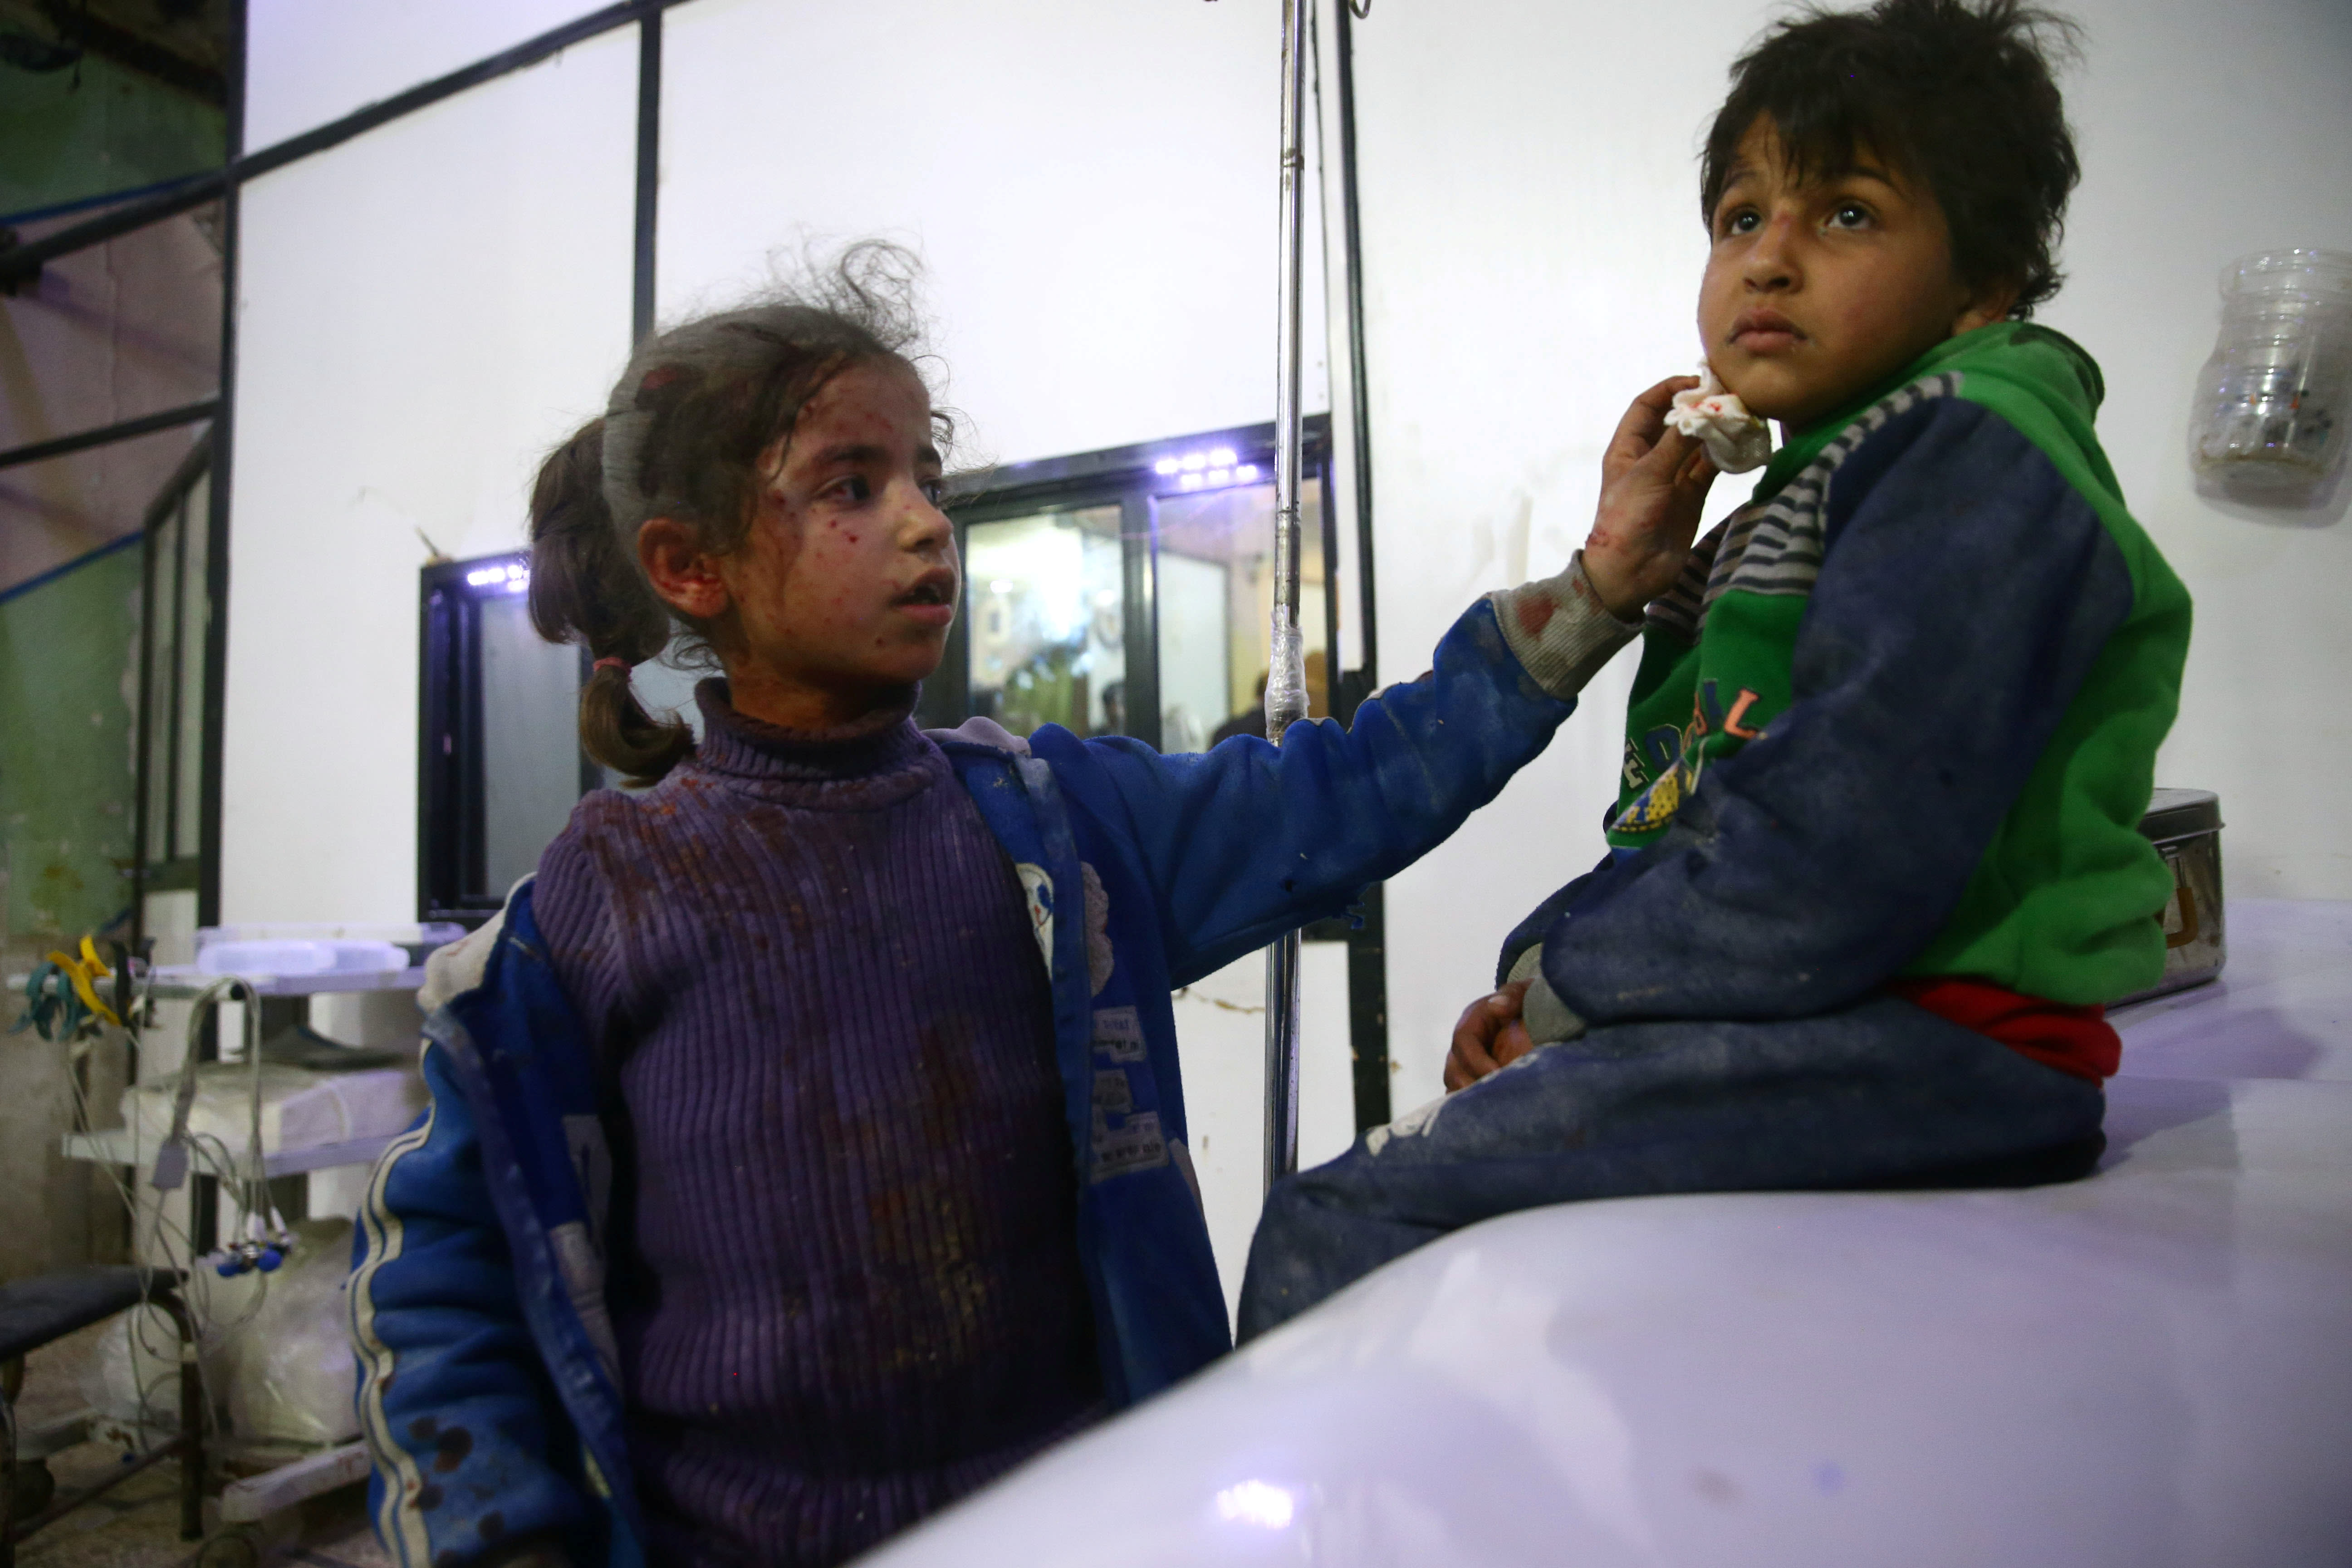 Wounded children are seen in a hospital in the besieged town of Douma, Eastern Ghouta, Damascus, Syria February 23, 2018. (Reuters)